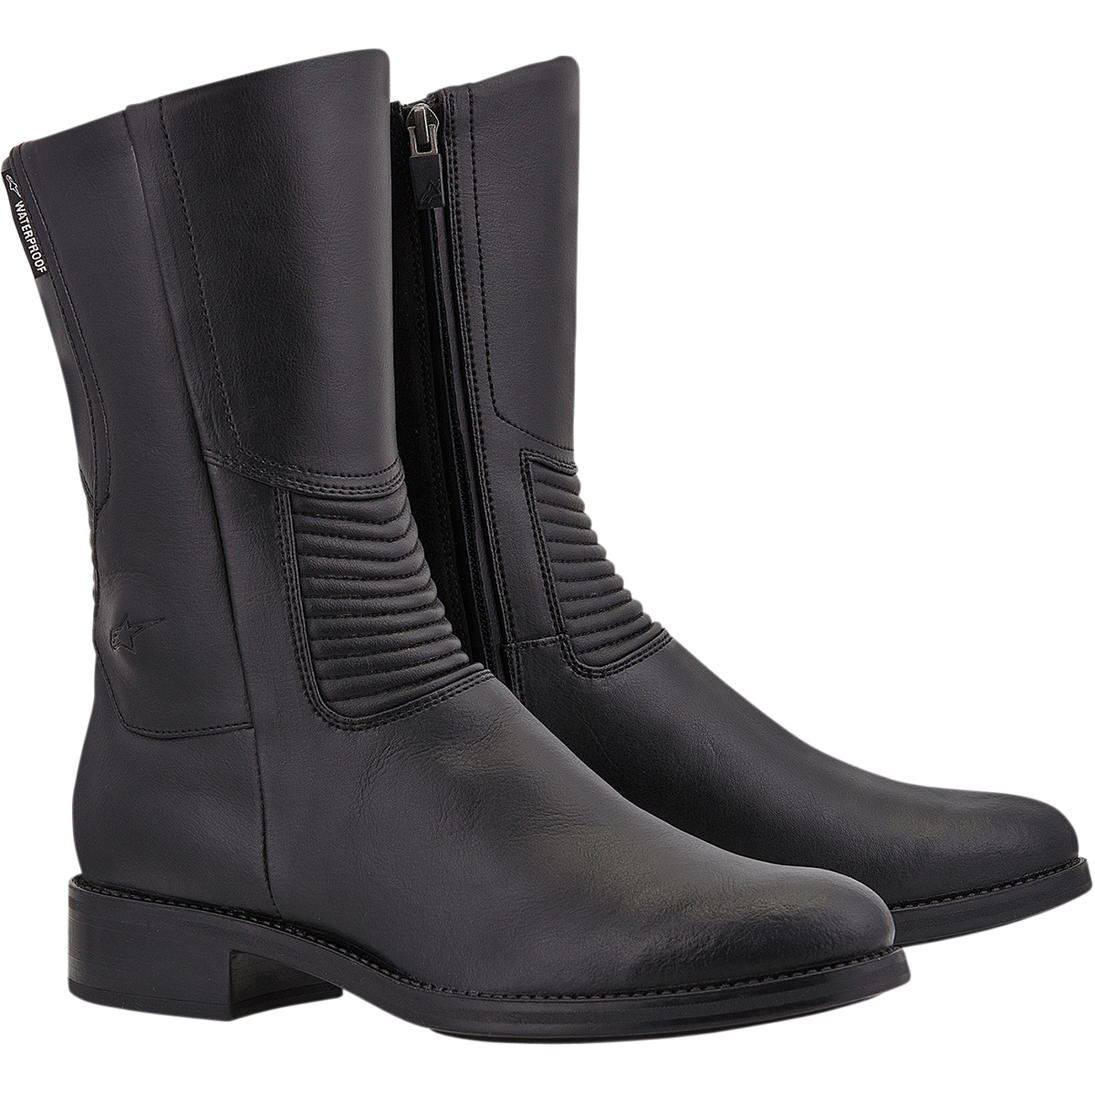 Women's Vika Waterproof Boots